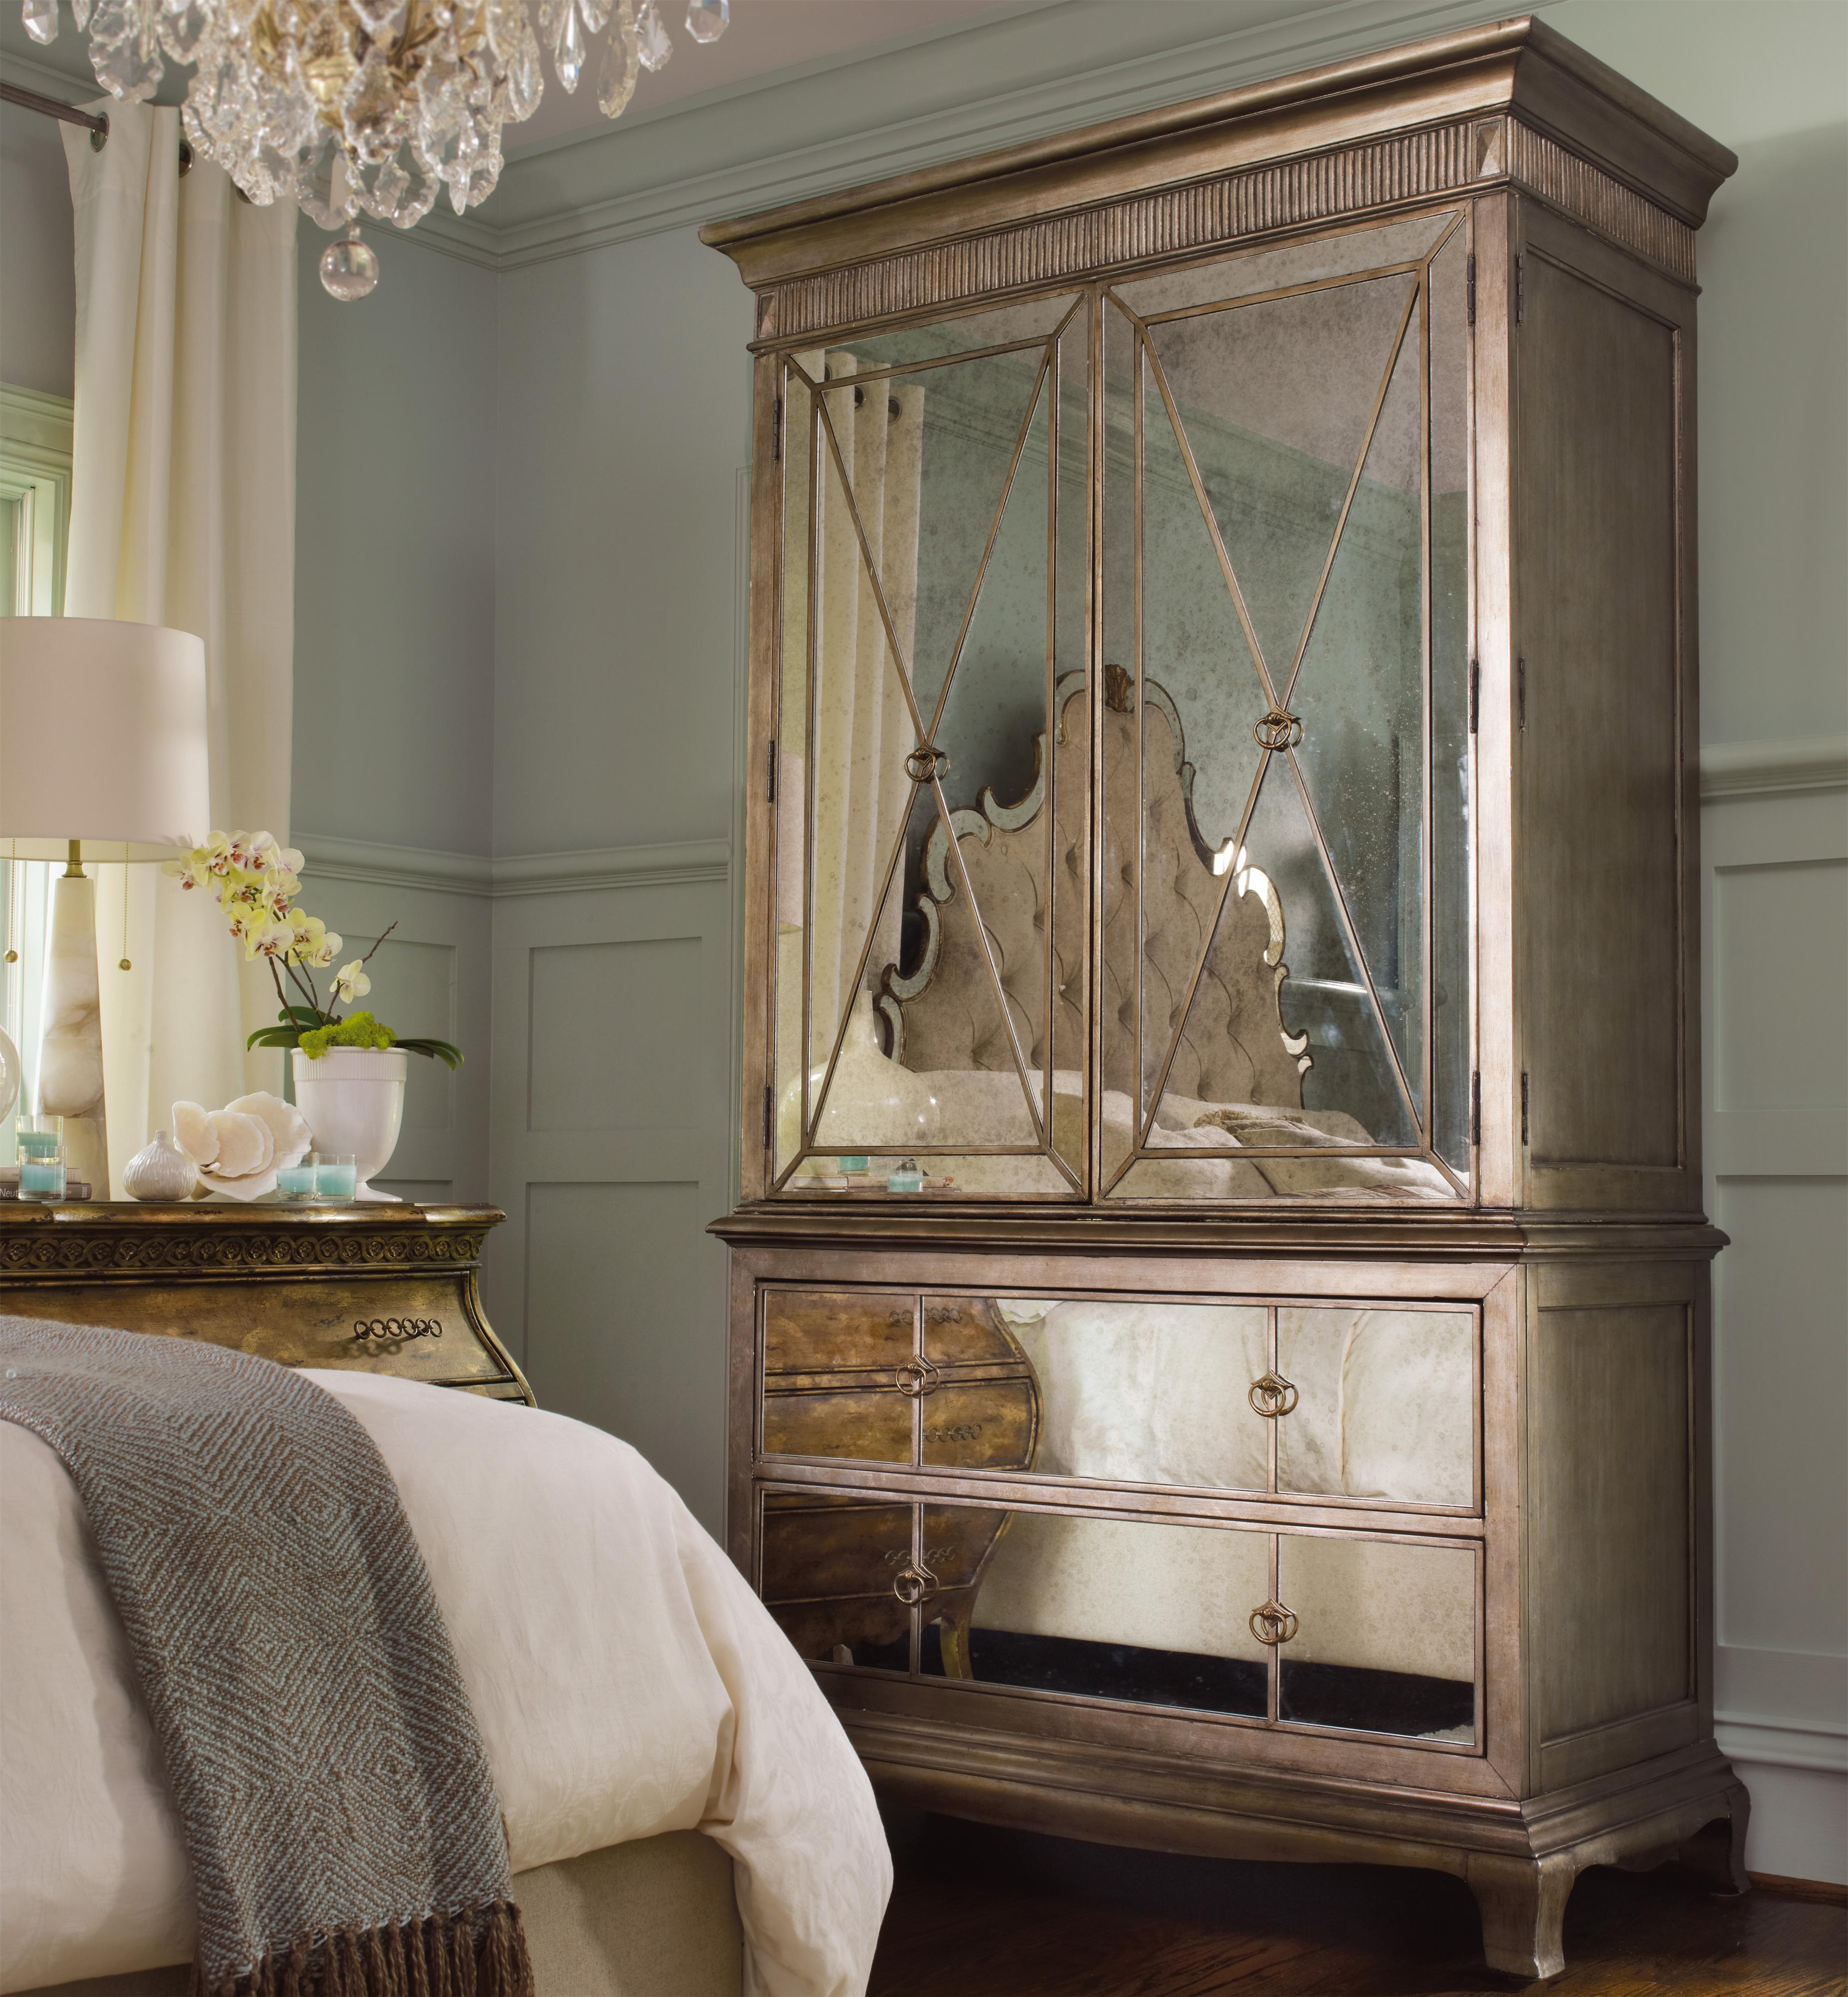 Bedroom Furniture Armoire two-door two-drawer armoire with mirror fronthooker furniture